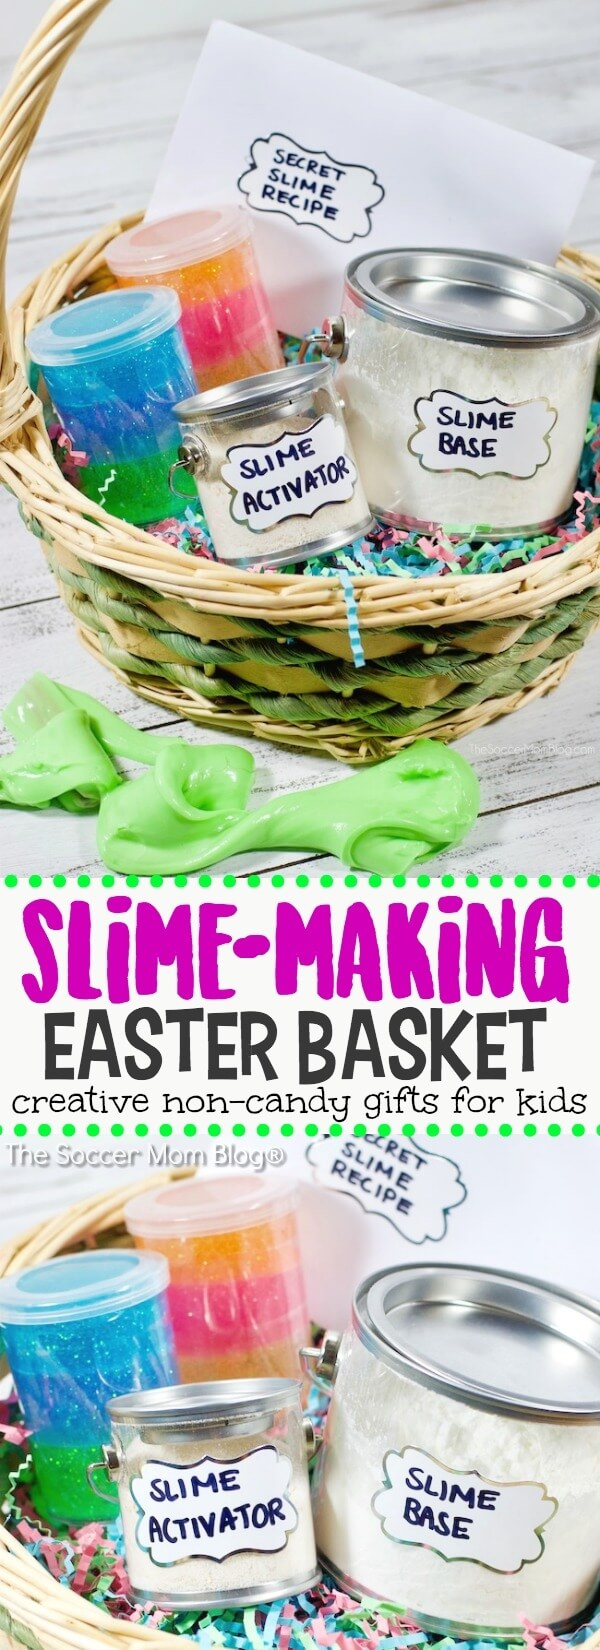 Kids won't even miss the candy with this creative and cool Slime Easter Basket! Packed with gooey-goodies and supplies to make slime at home!